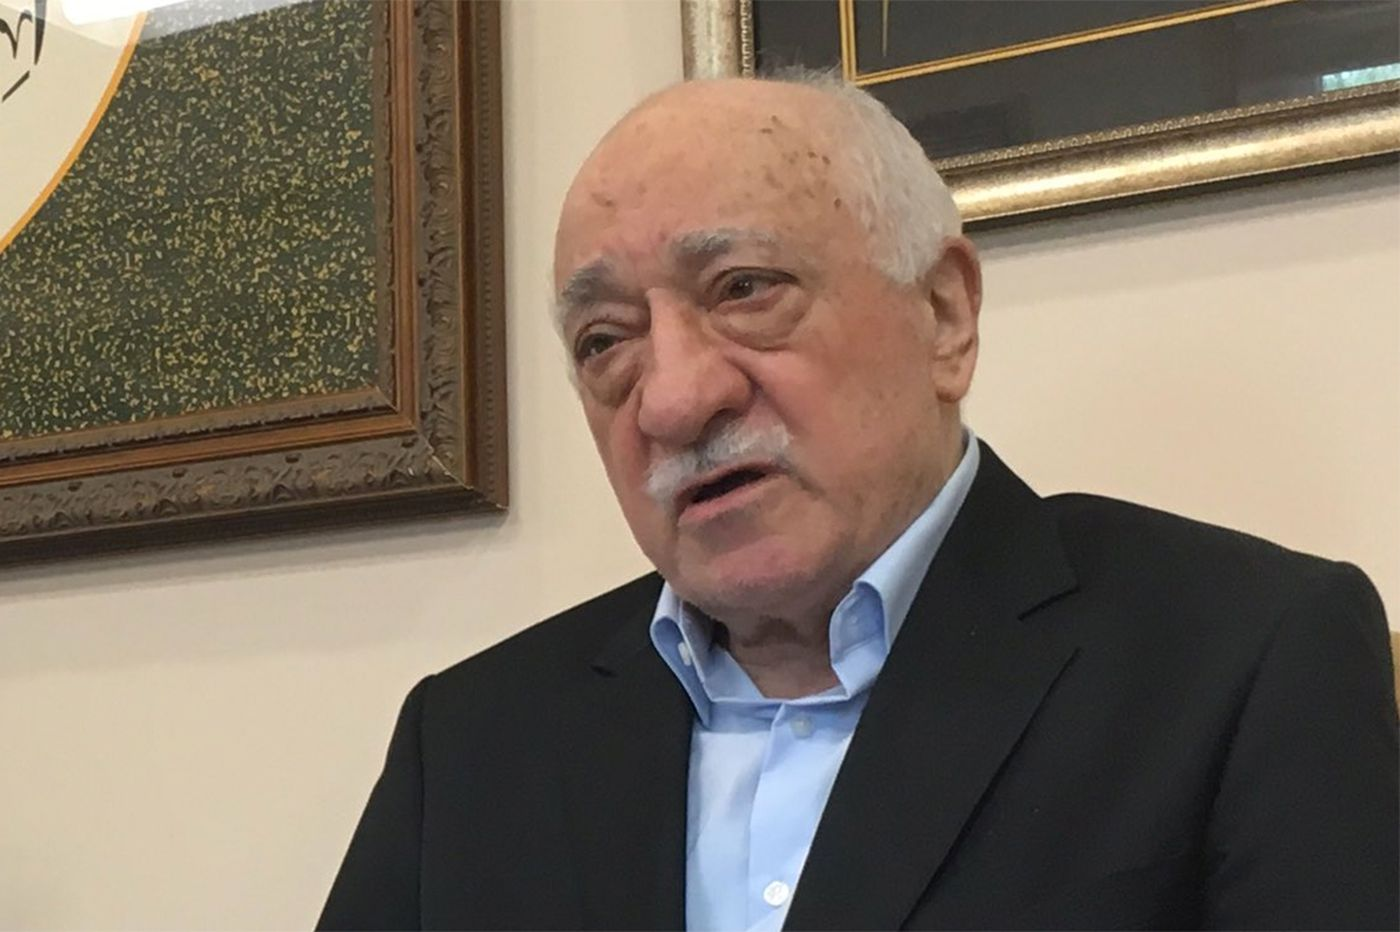 Who is Fethullah Gülen, the Turkish cleric exiled in the Poconos at the center of charges against associates of Michael Flynn?